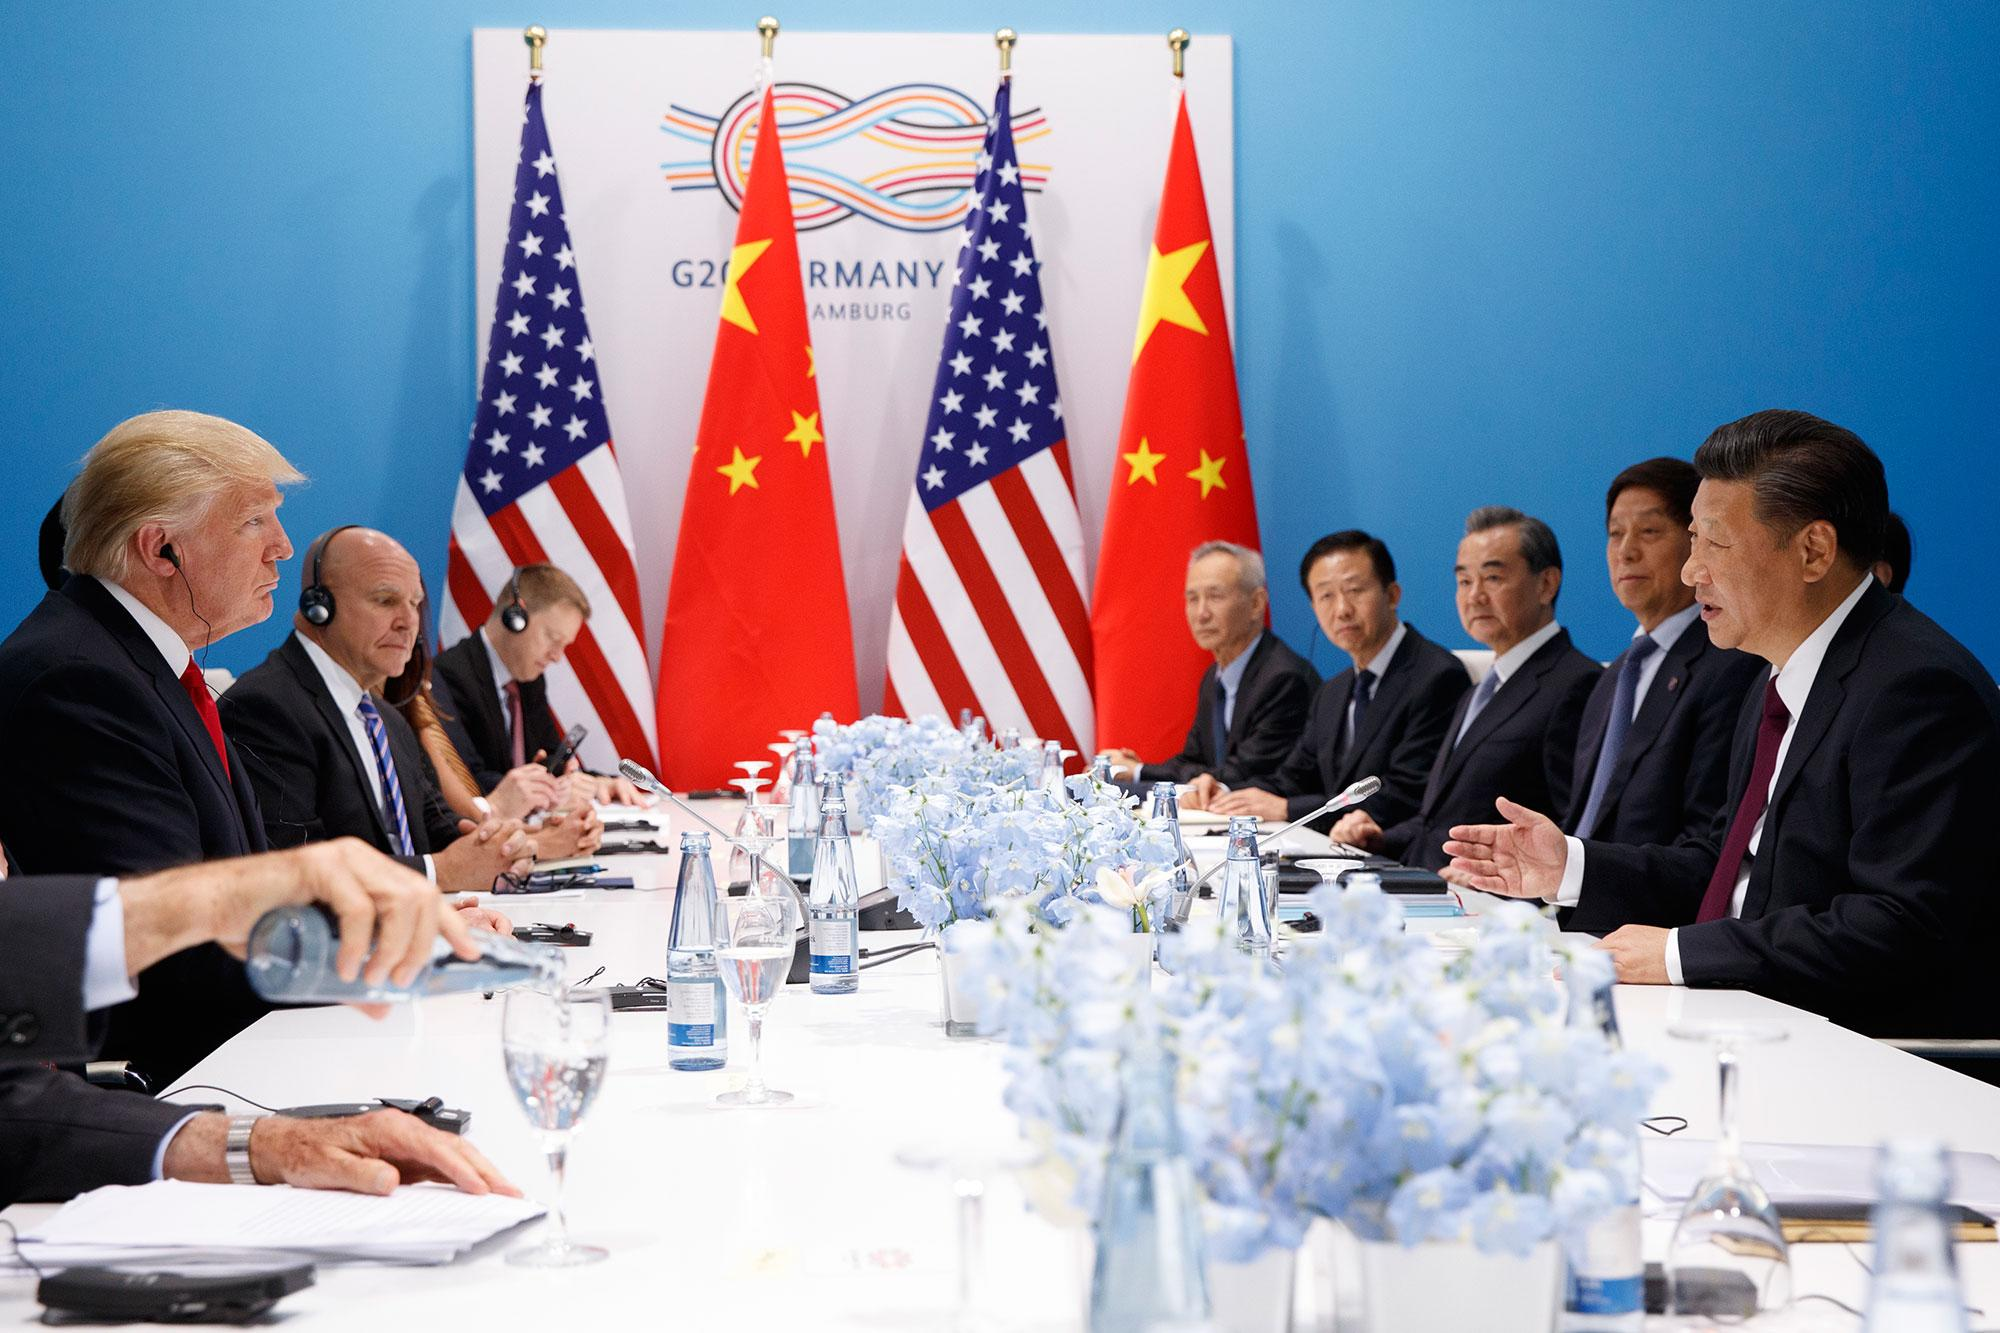 <p>President Donald Trump meets with Chinese President Xi Jinping at the G20 Summit, Saturday, July 8, 2017, in Hamburg, Germany. (Photo: Evan Vucci/AP) </p>